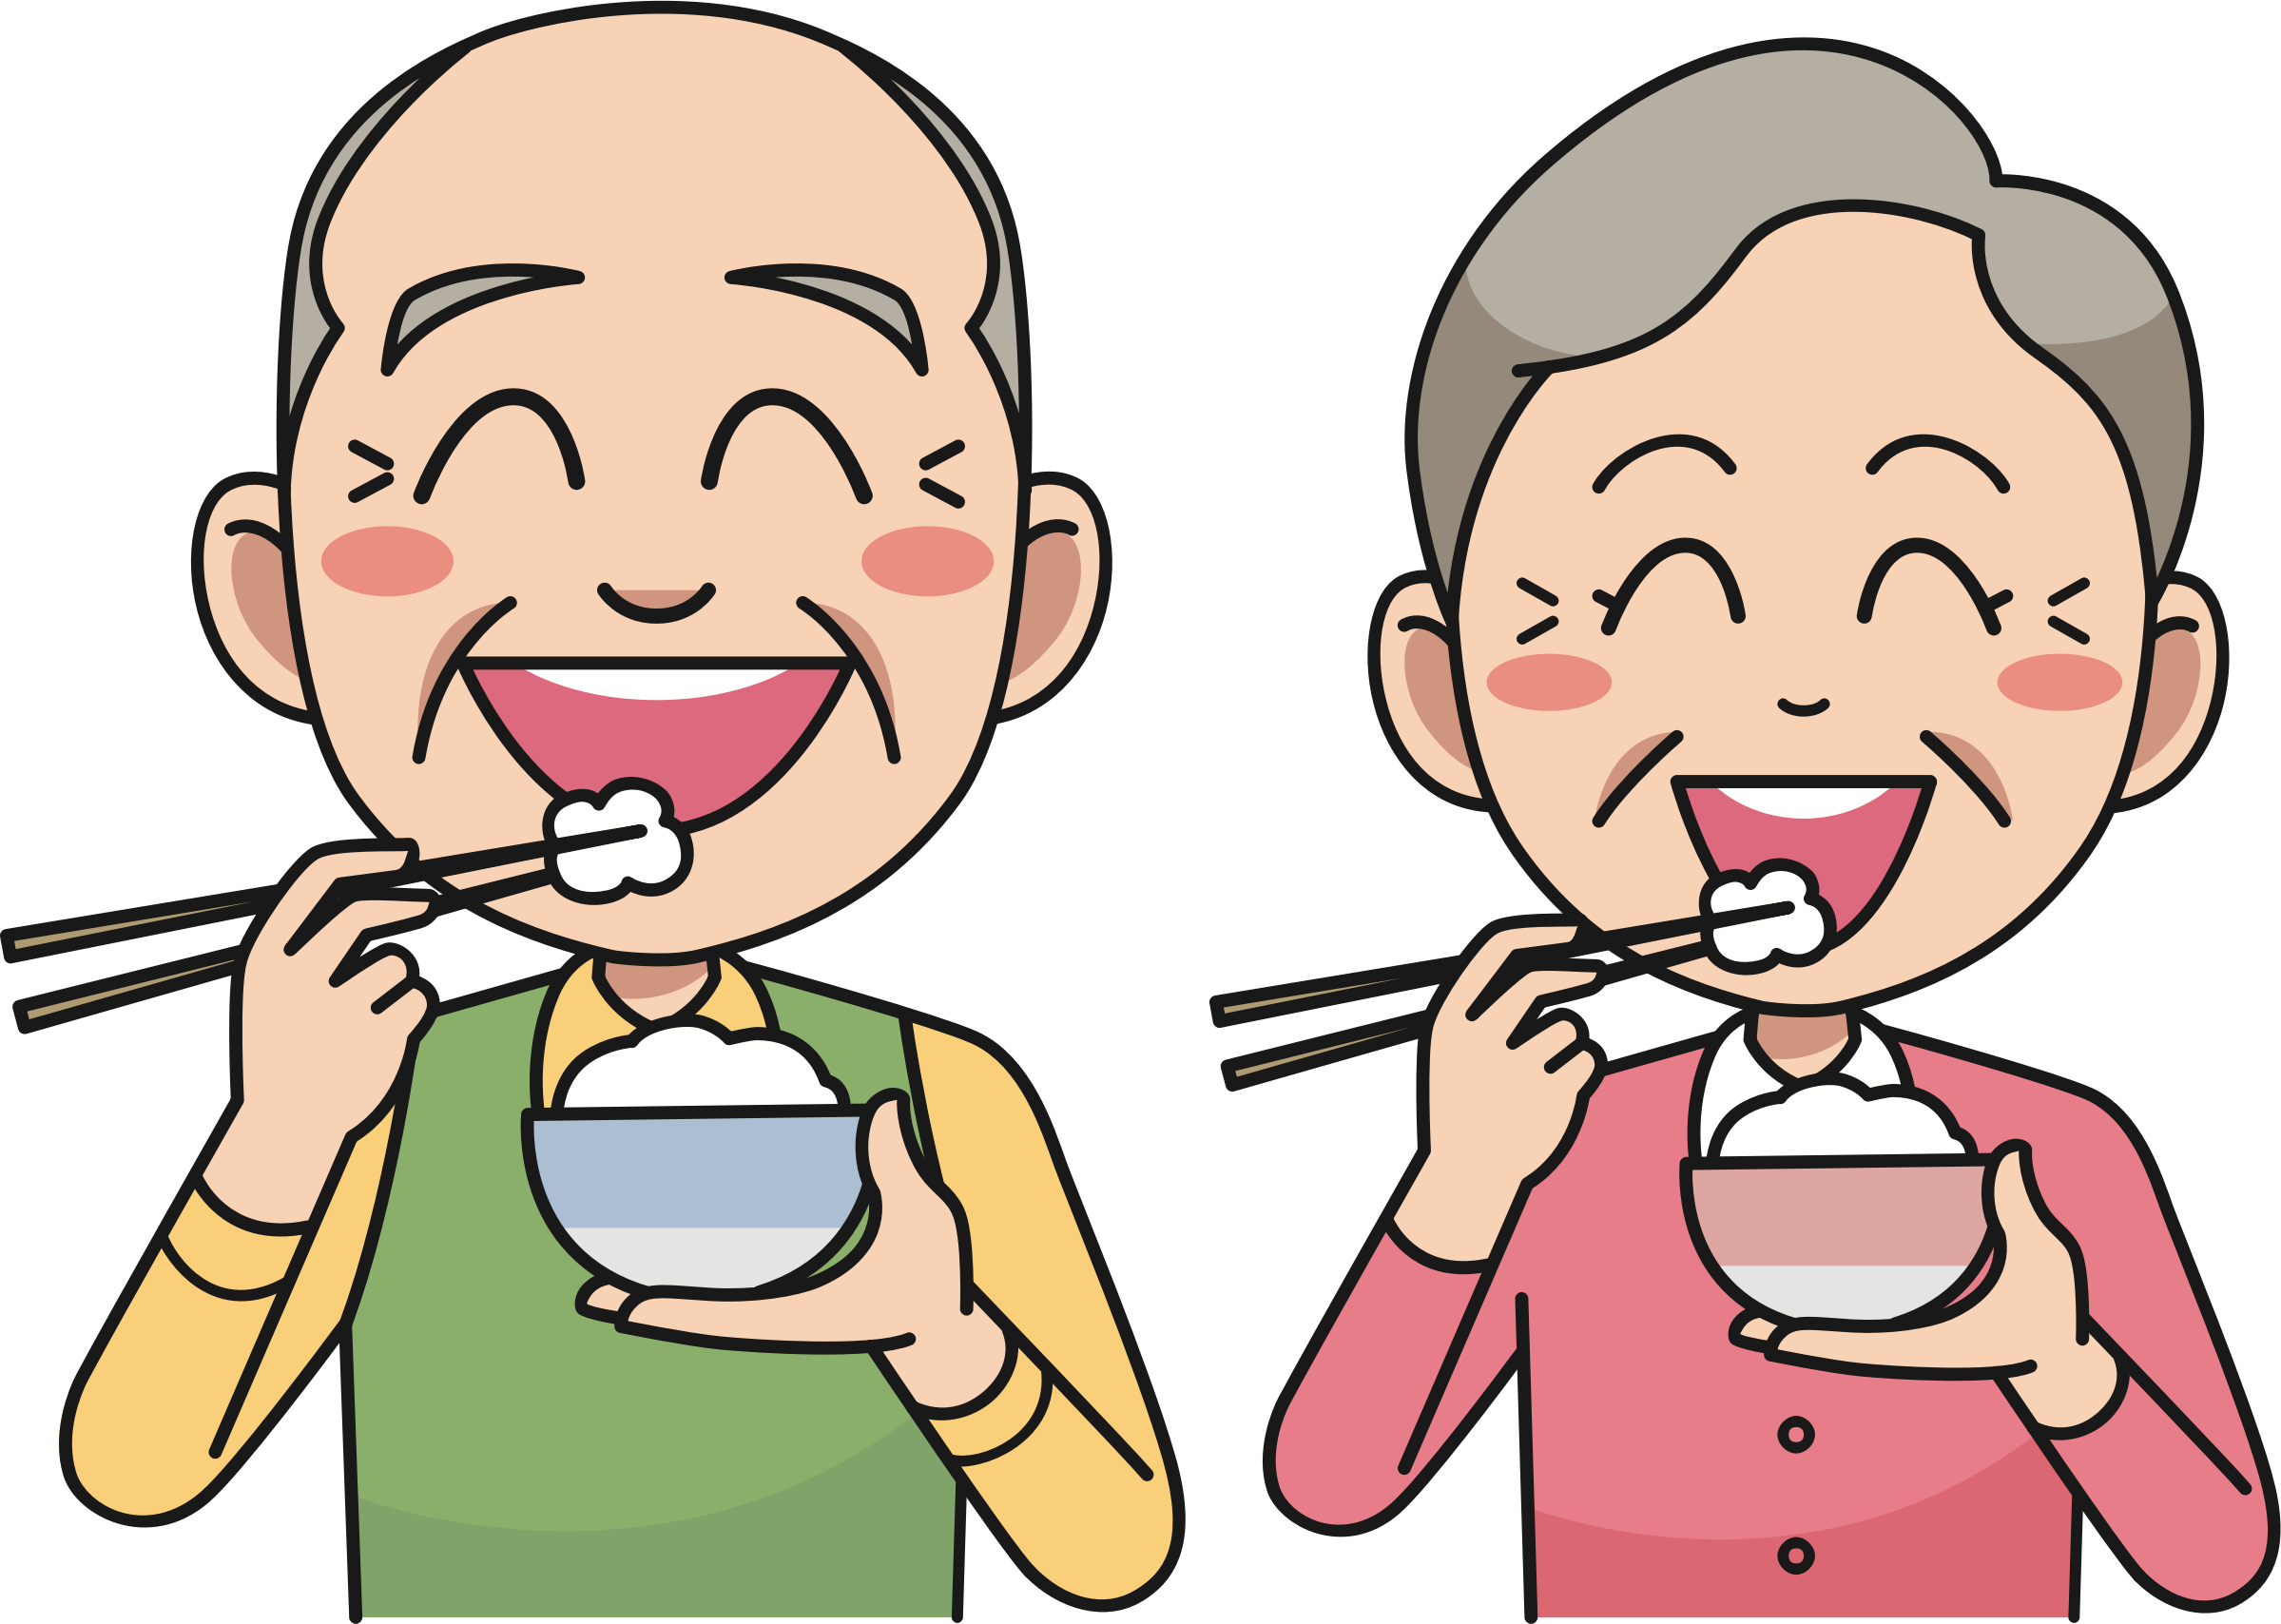 Foods clipart rice. Couple eating big image